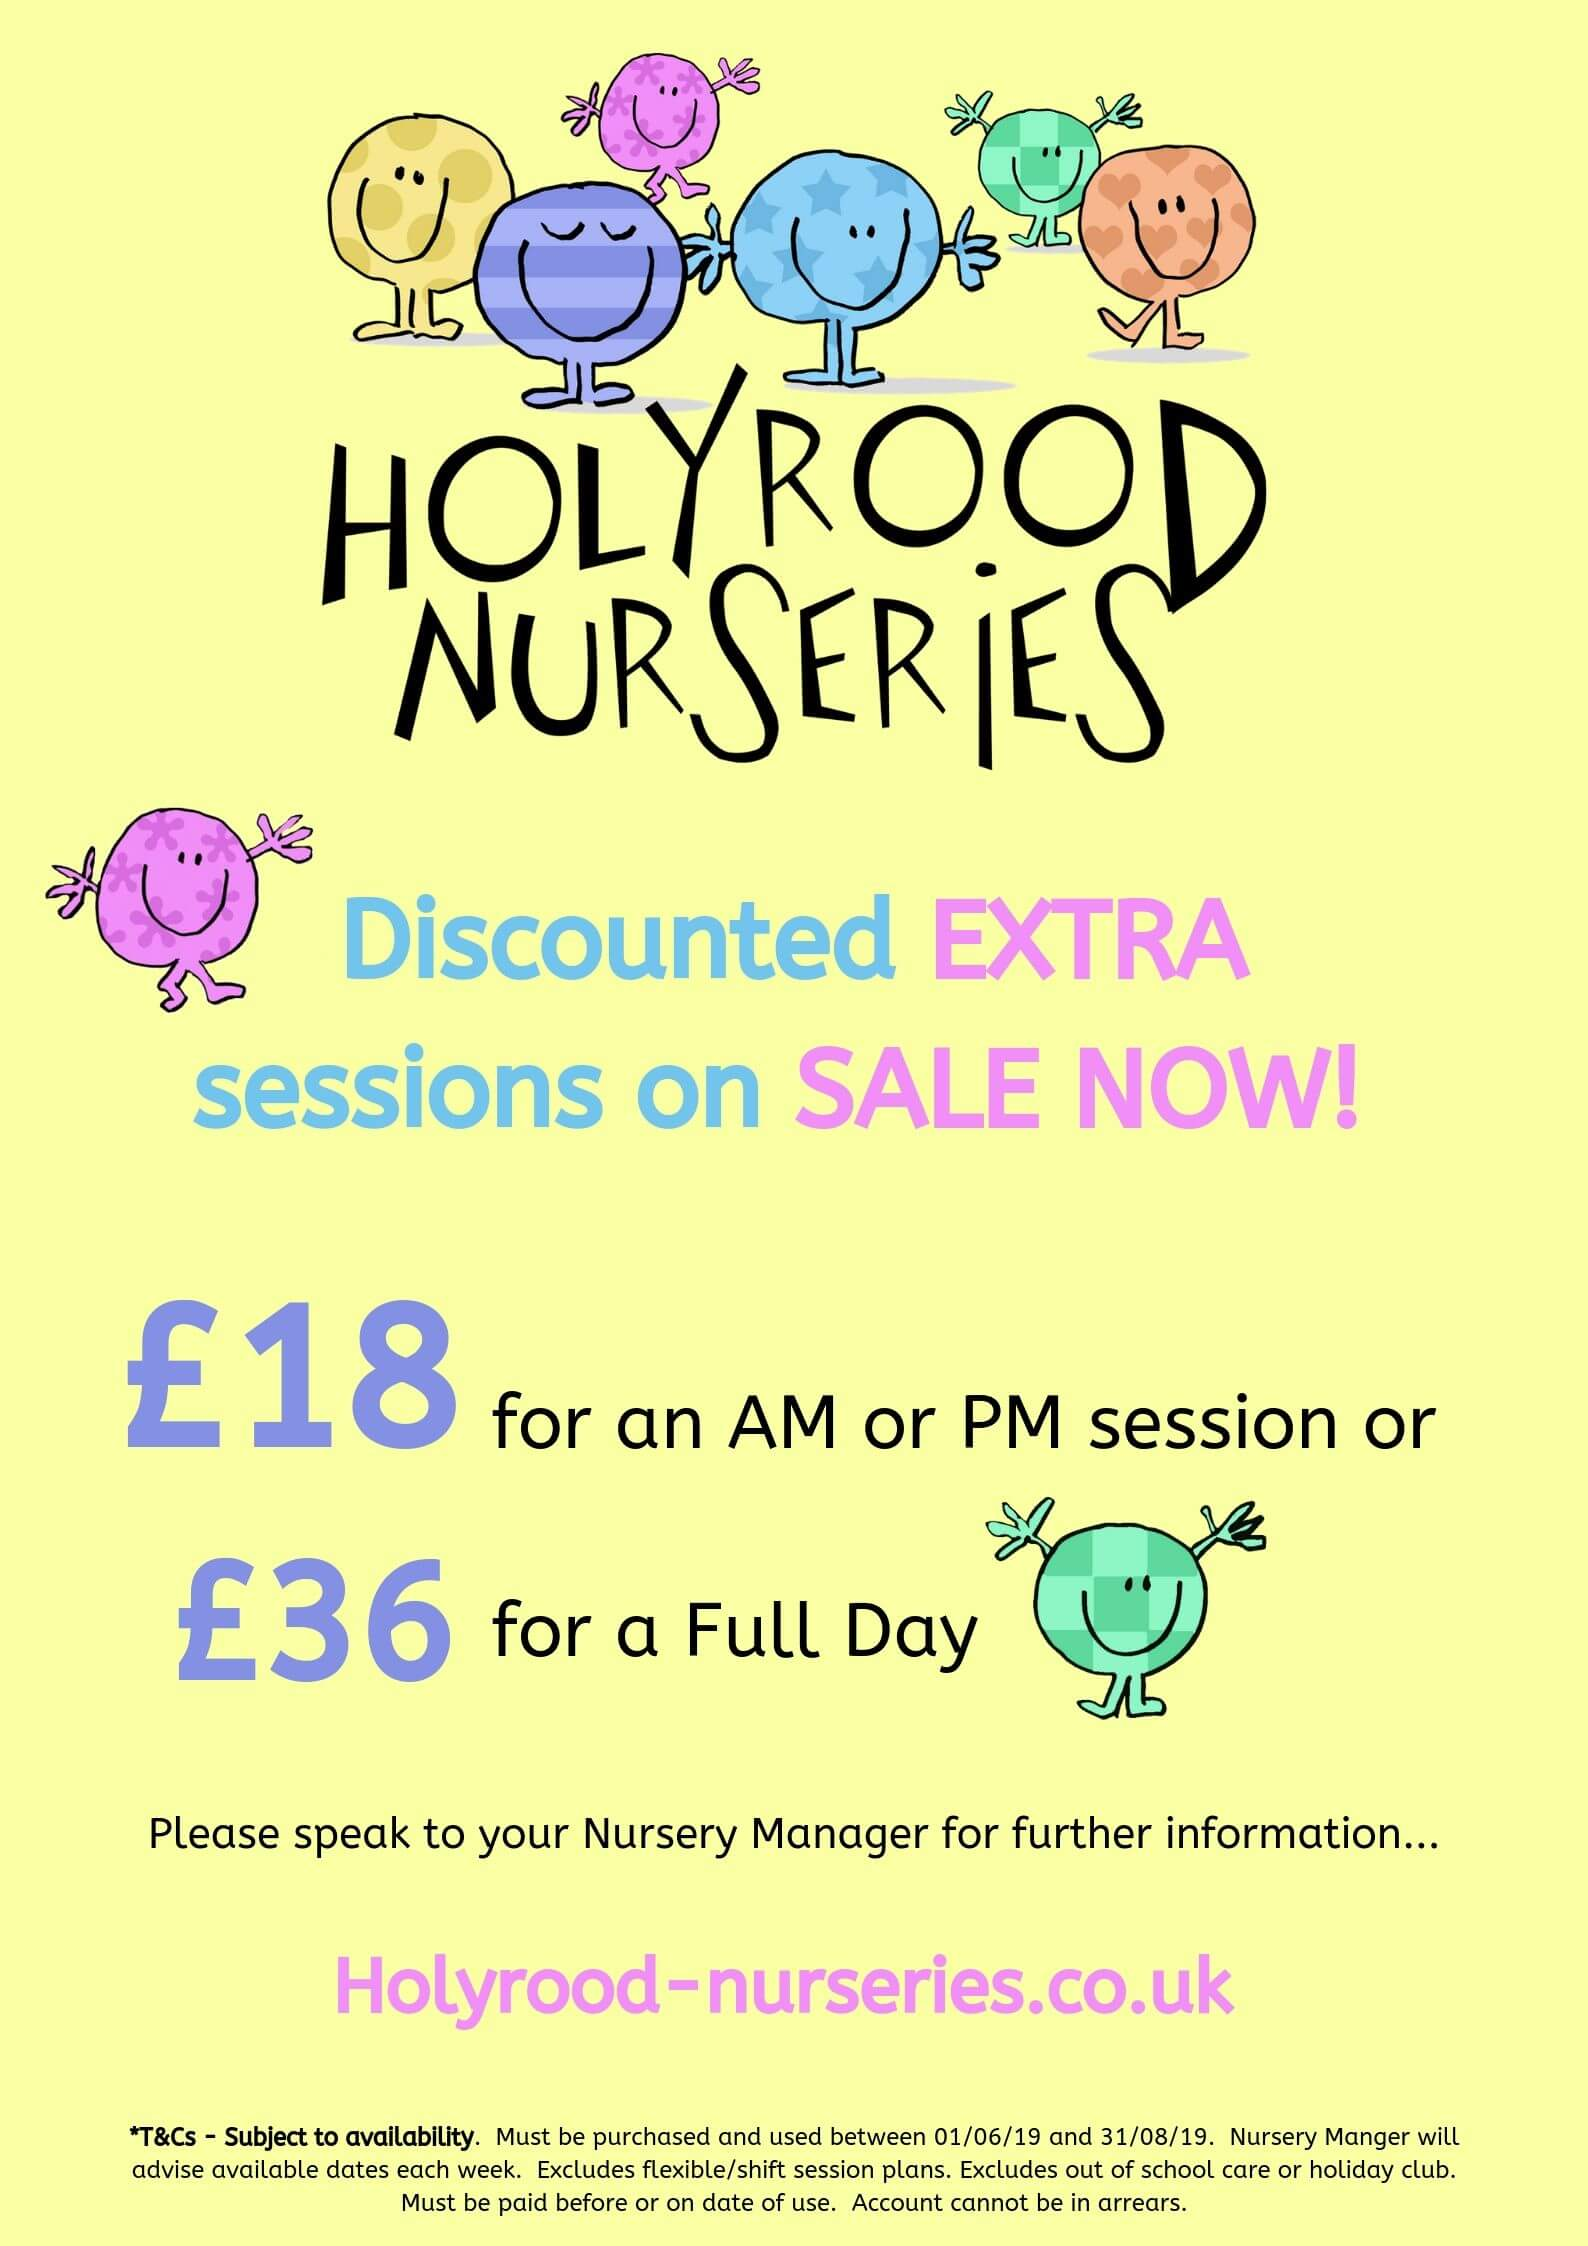 discounted rate offer at the nursery